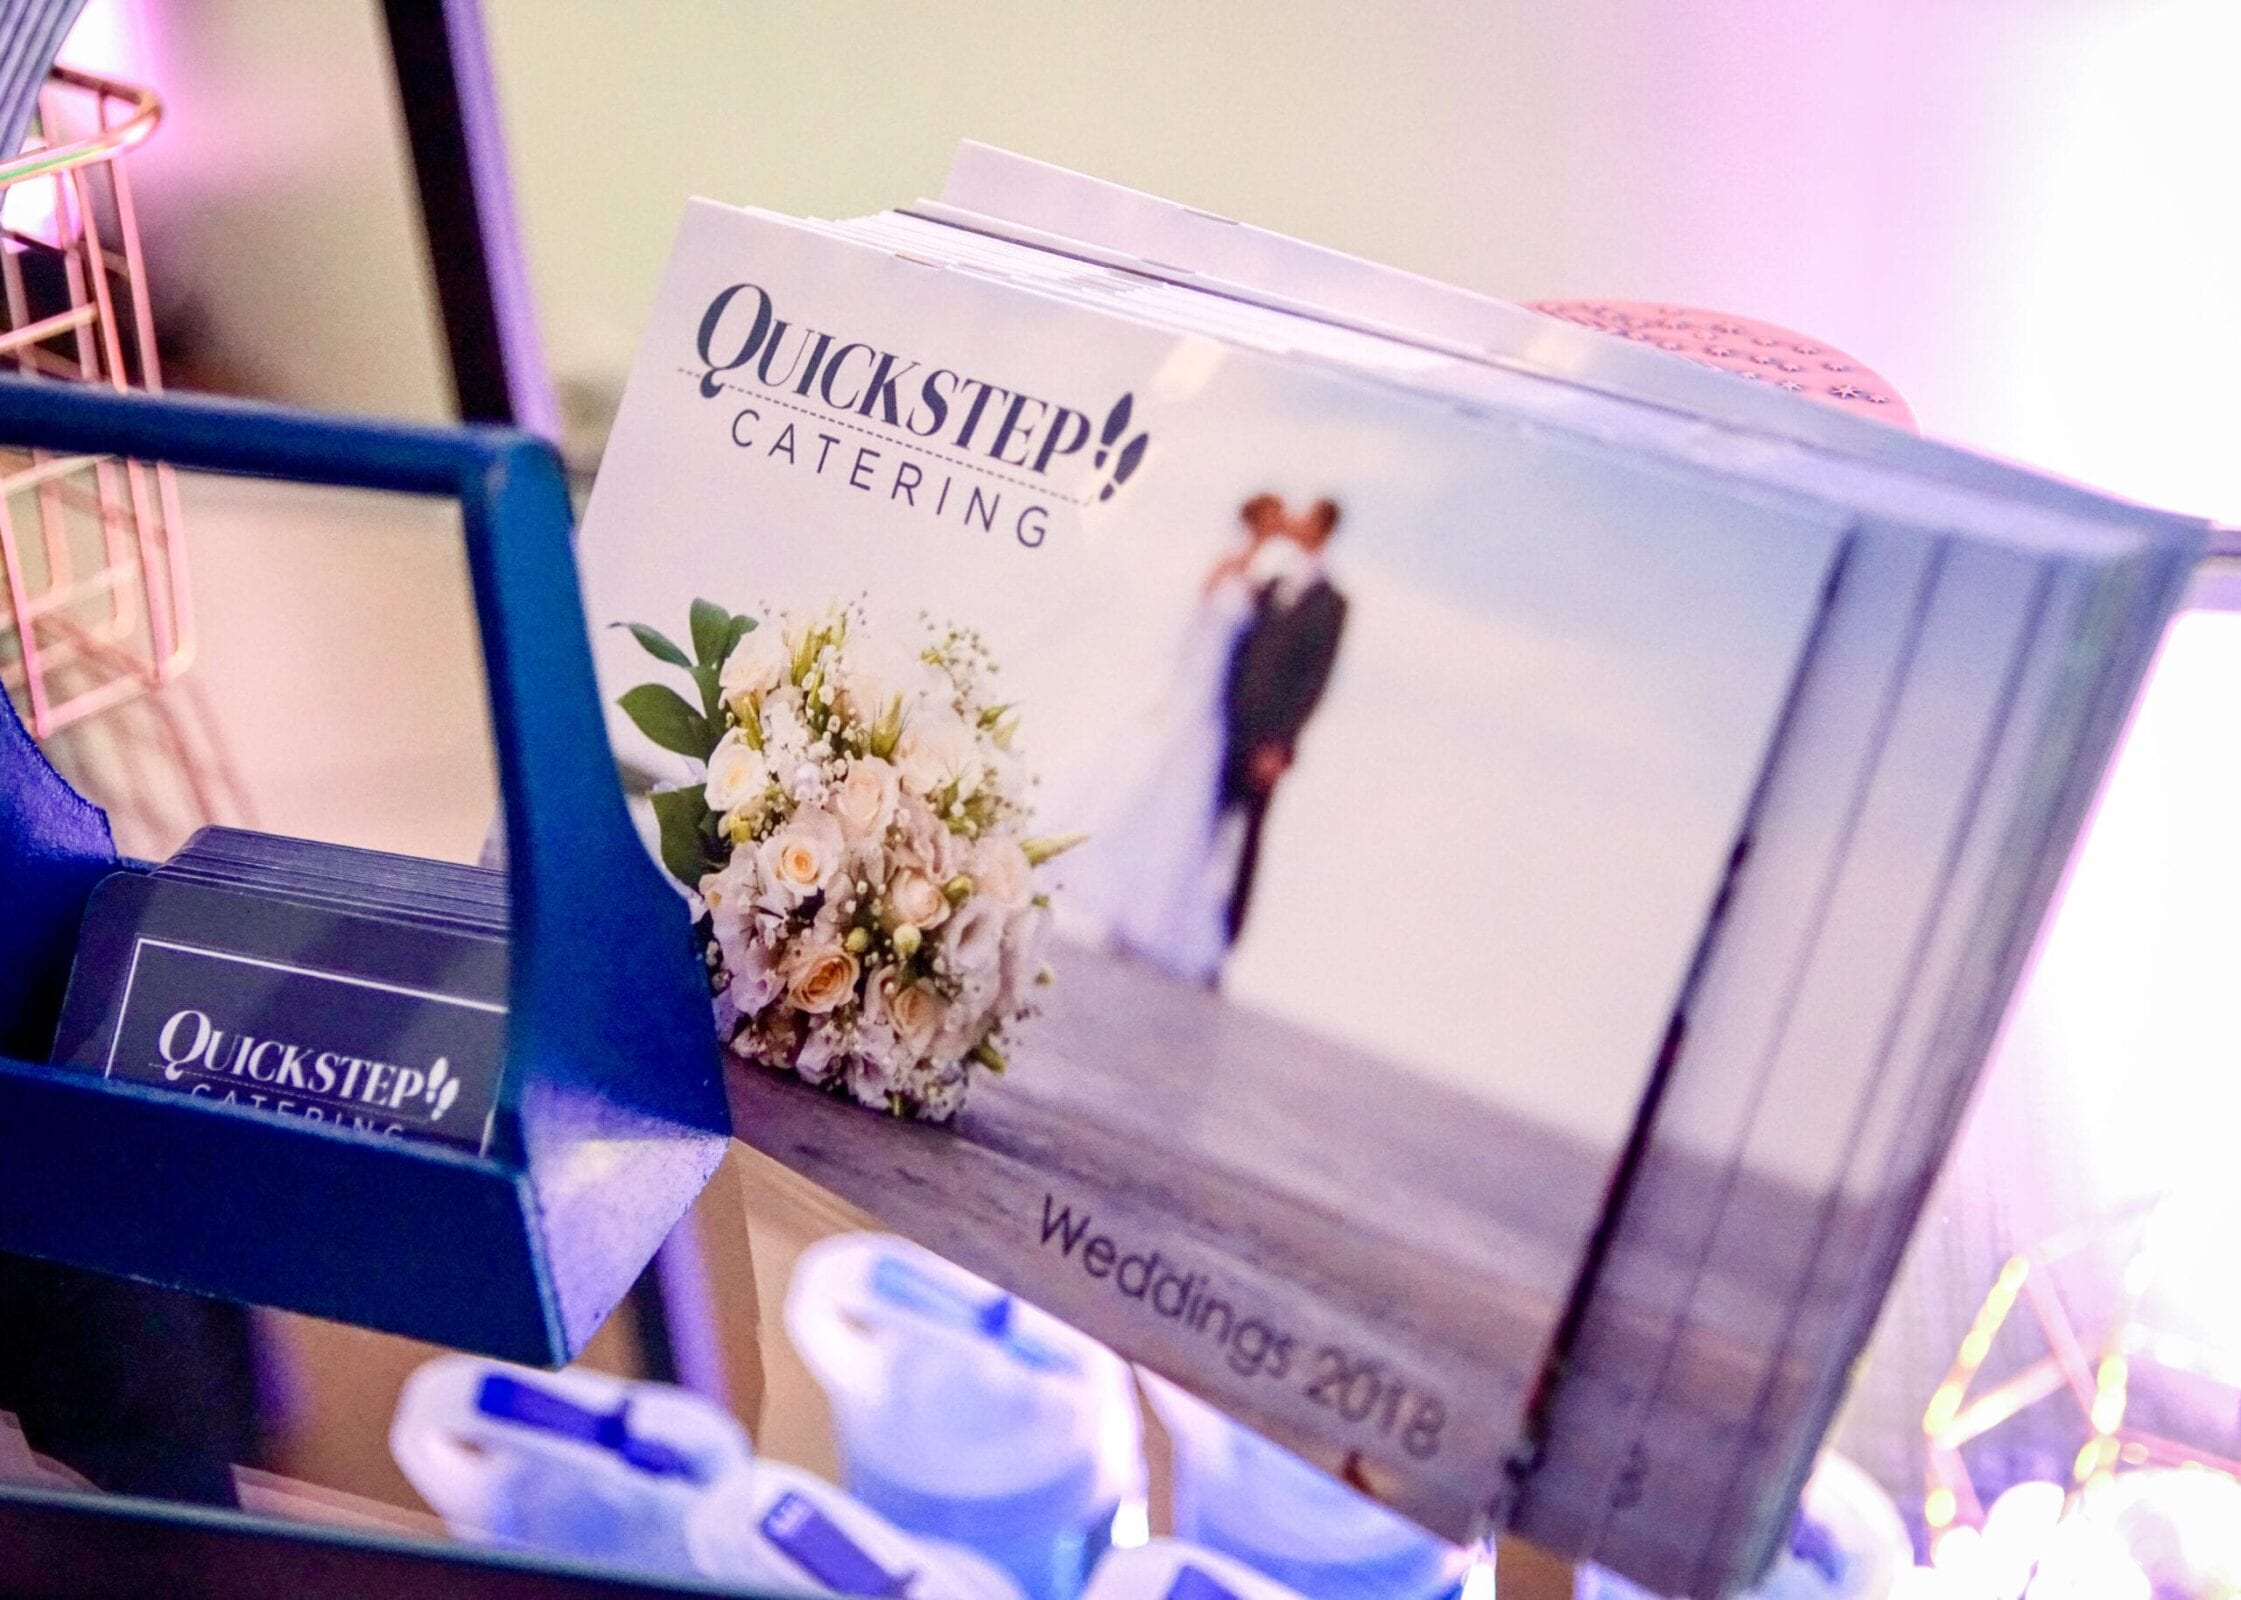 Quickstep Catering catered the District Bliss Vendor Social, a light-hearted, welcoming, casual networking event